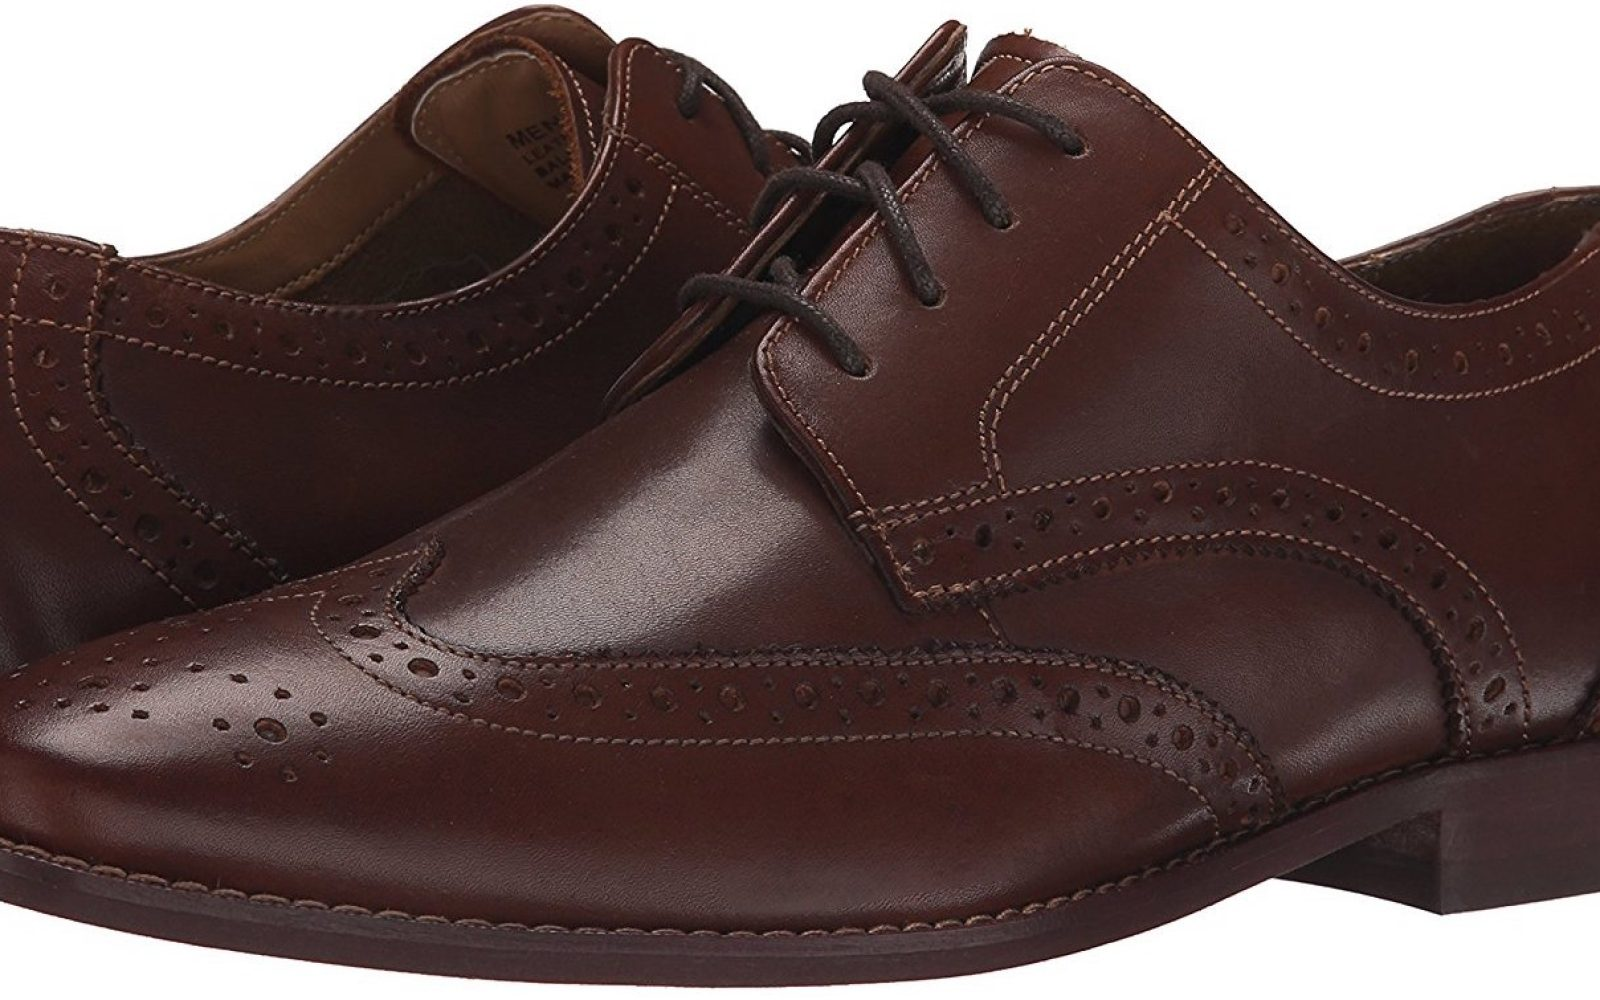 afcd0f2bb56 Amazon's 1-Day Men's Leather Florsheim Shoe Sale up to 50% off ...